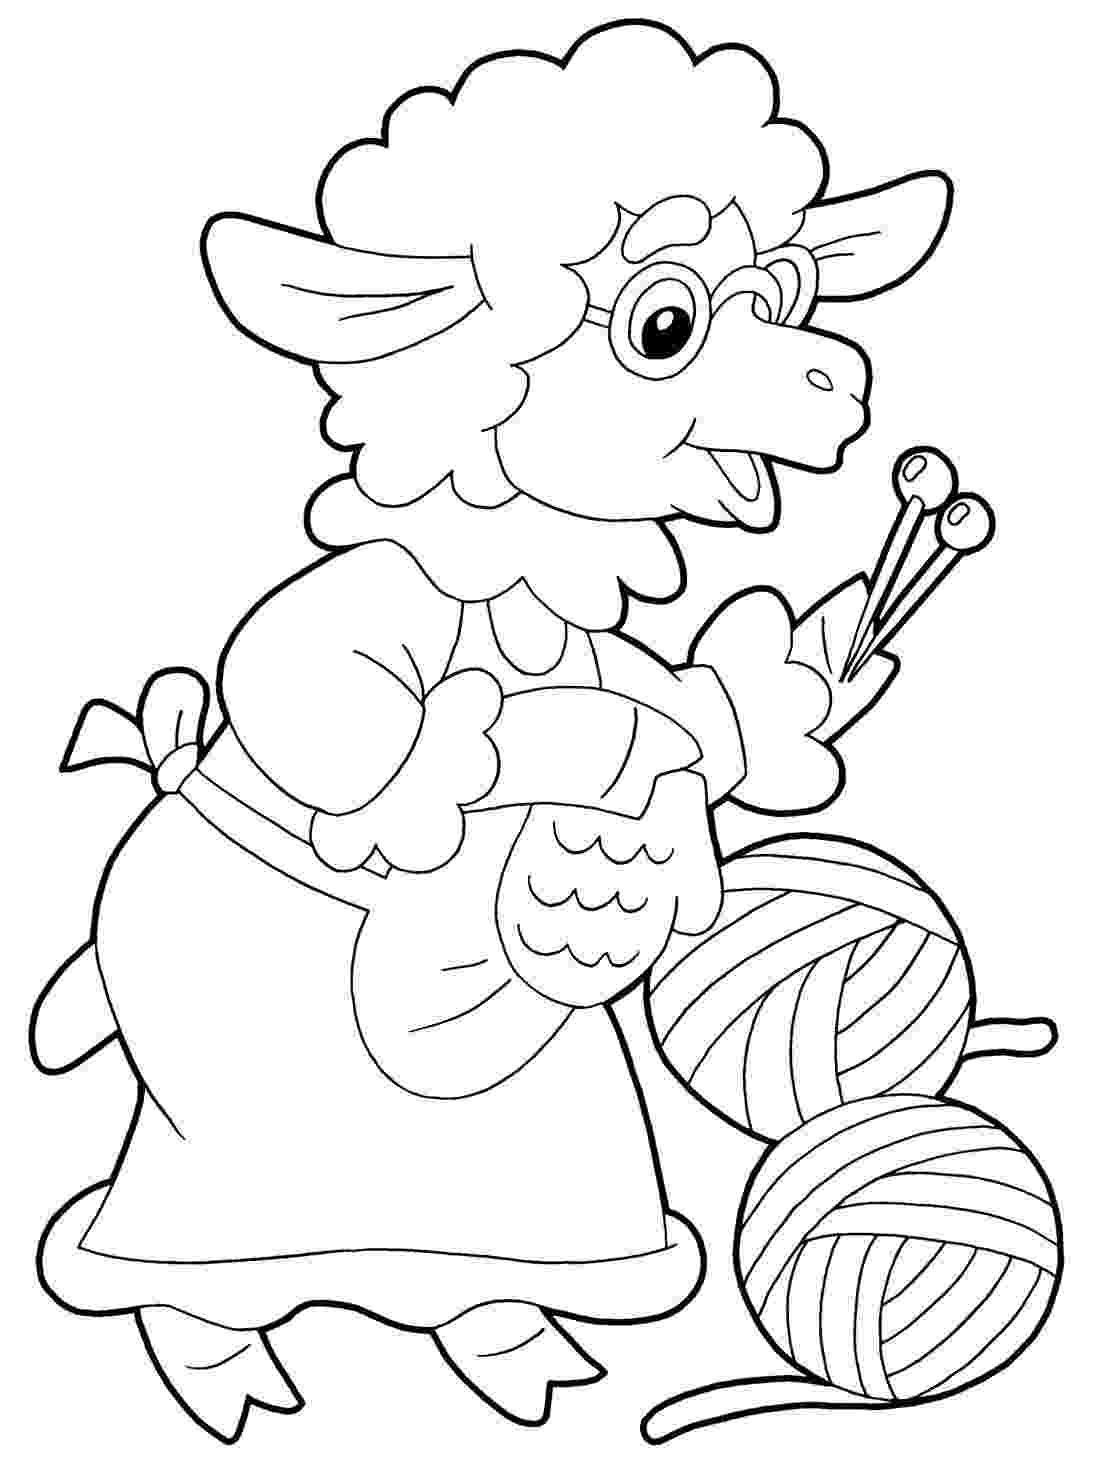 coloring pages for lol surprise coloring pages to download and print for free coloring pages for